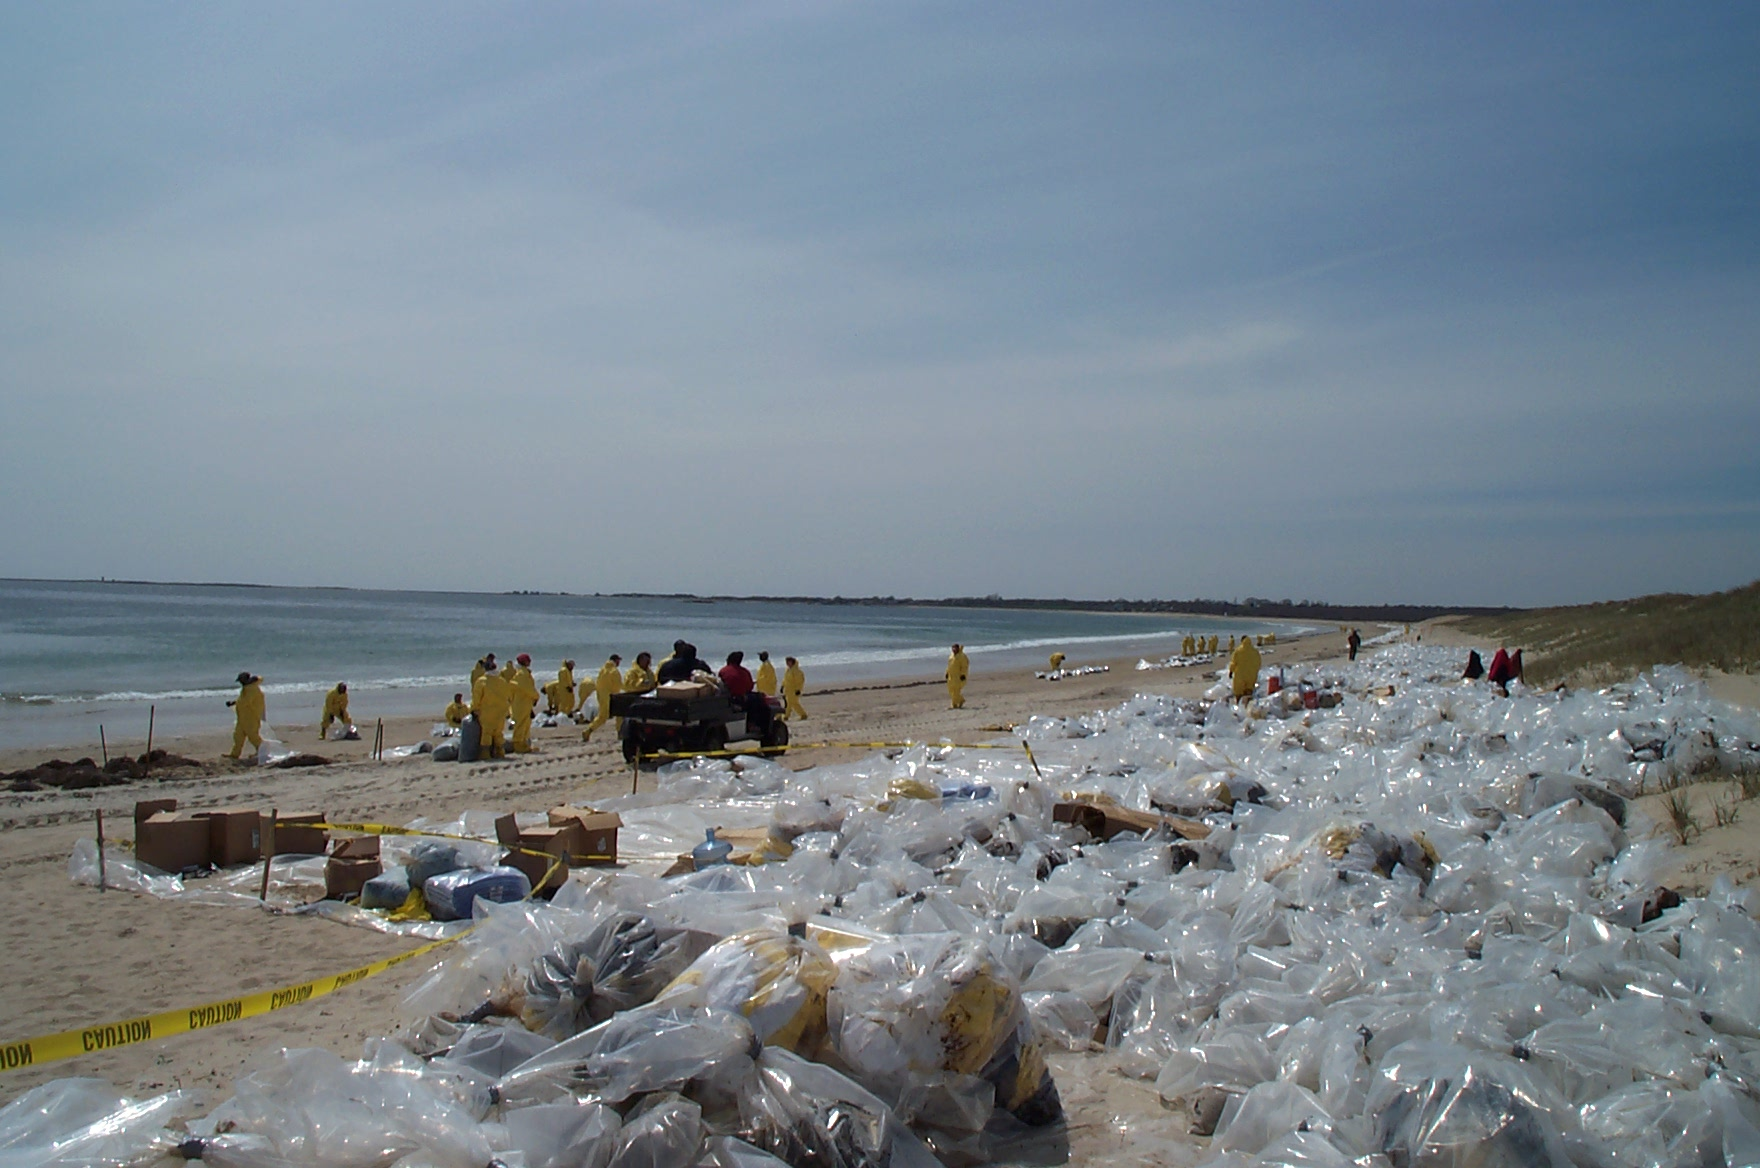 Cleanup workers collect oiled debris from sand beach, South Dartmouth, MA.